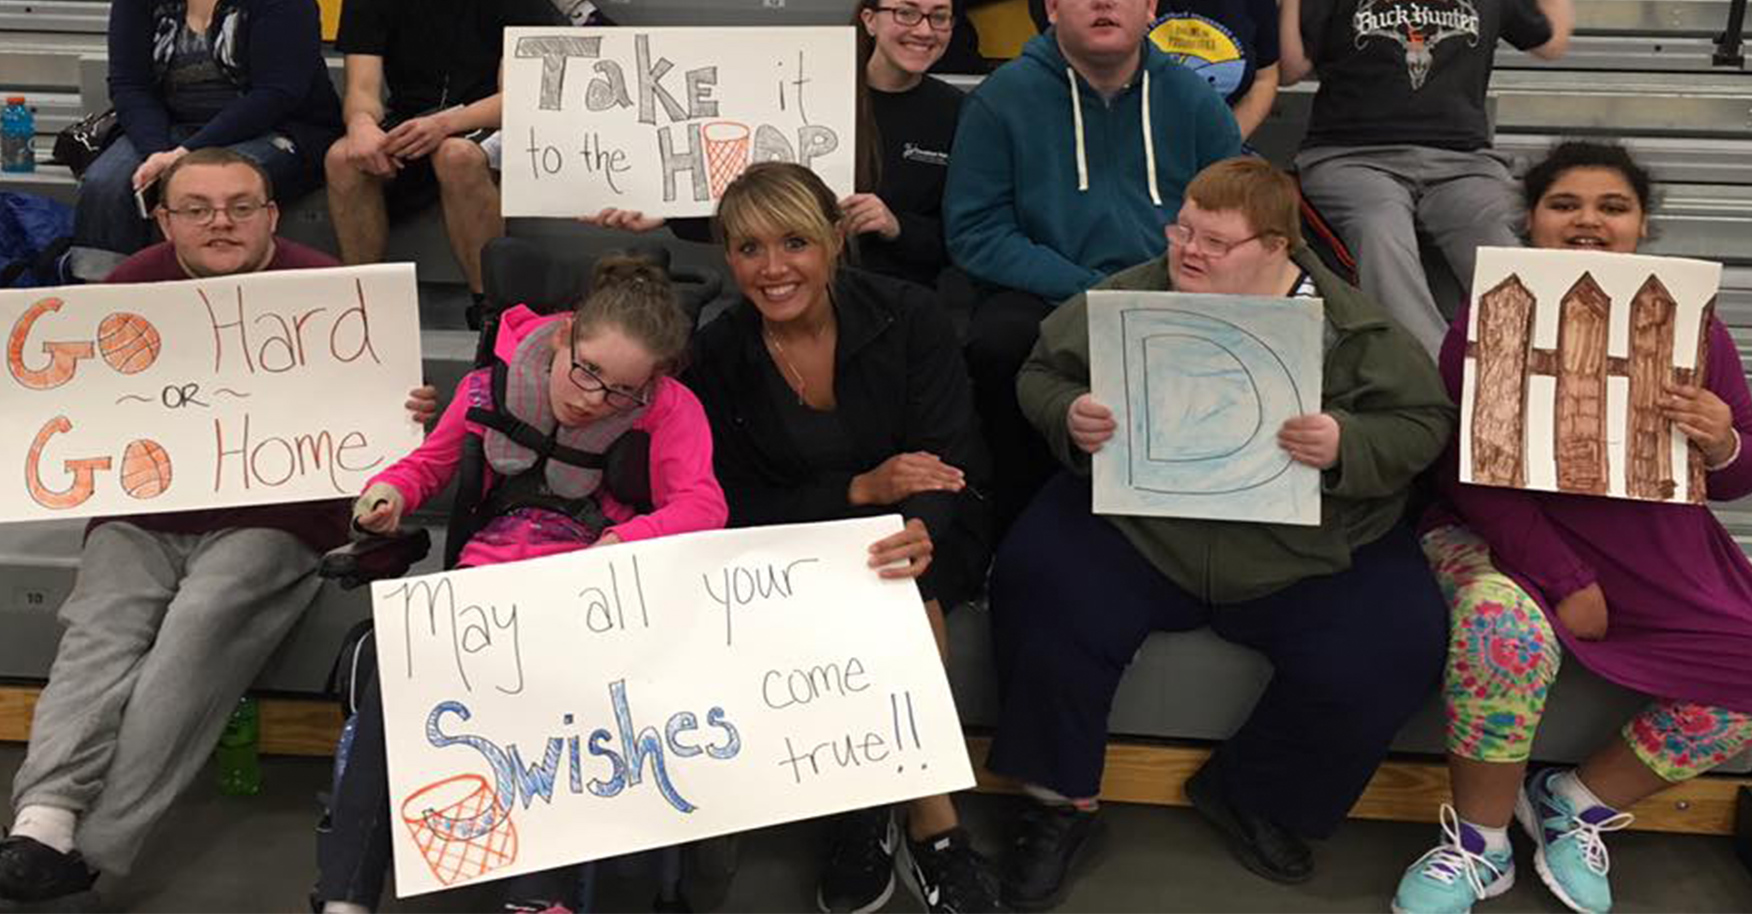 Covey clients at a basketball game holding up signs.